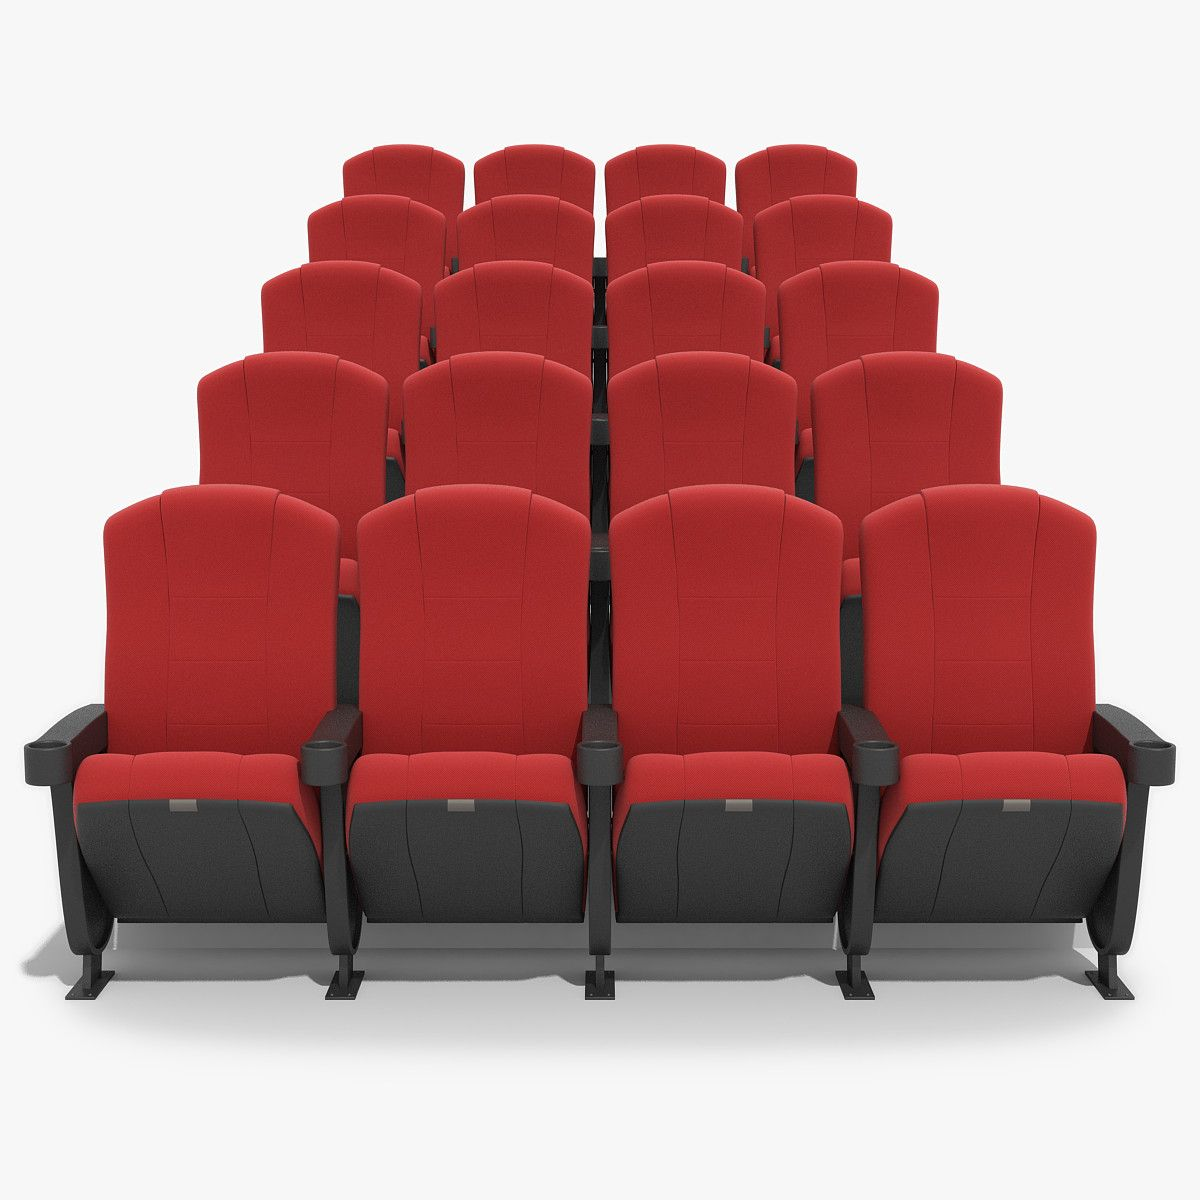 Movie theater chairs  Bad Designs  Pinterest  Movie